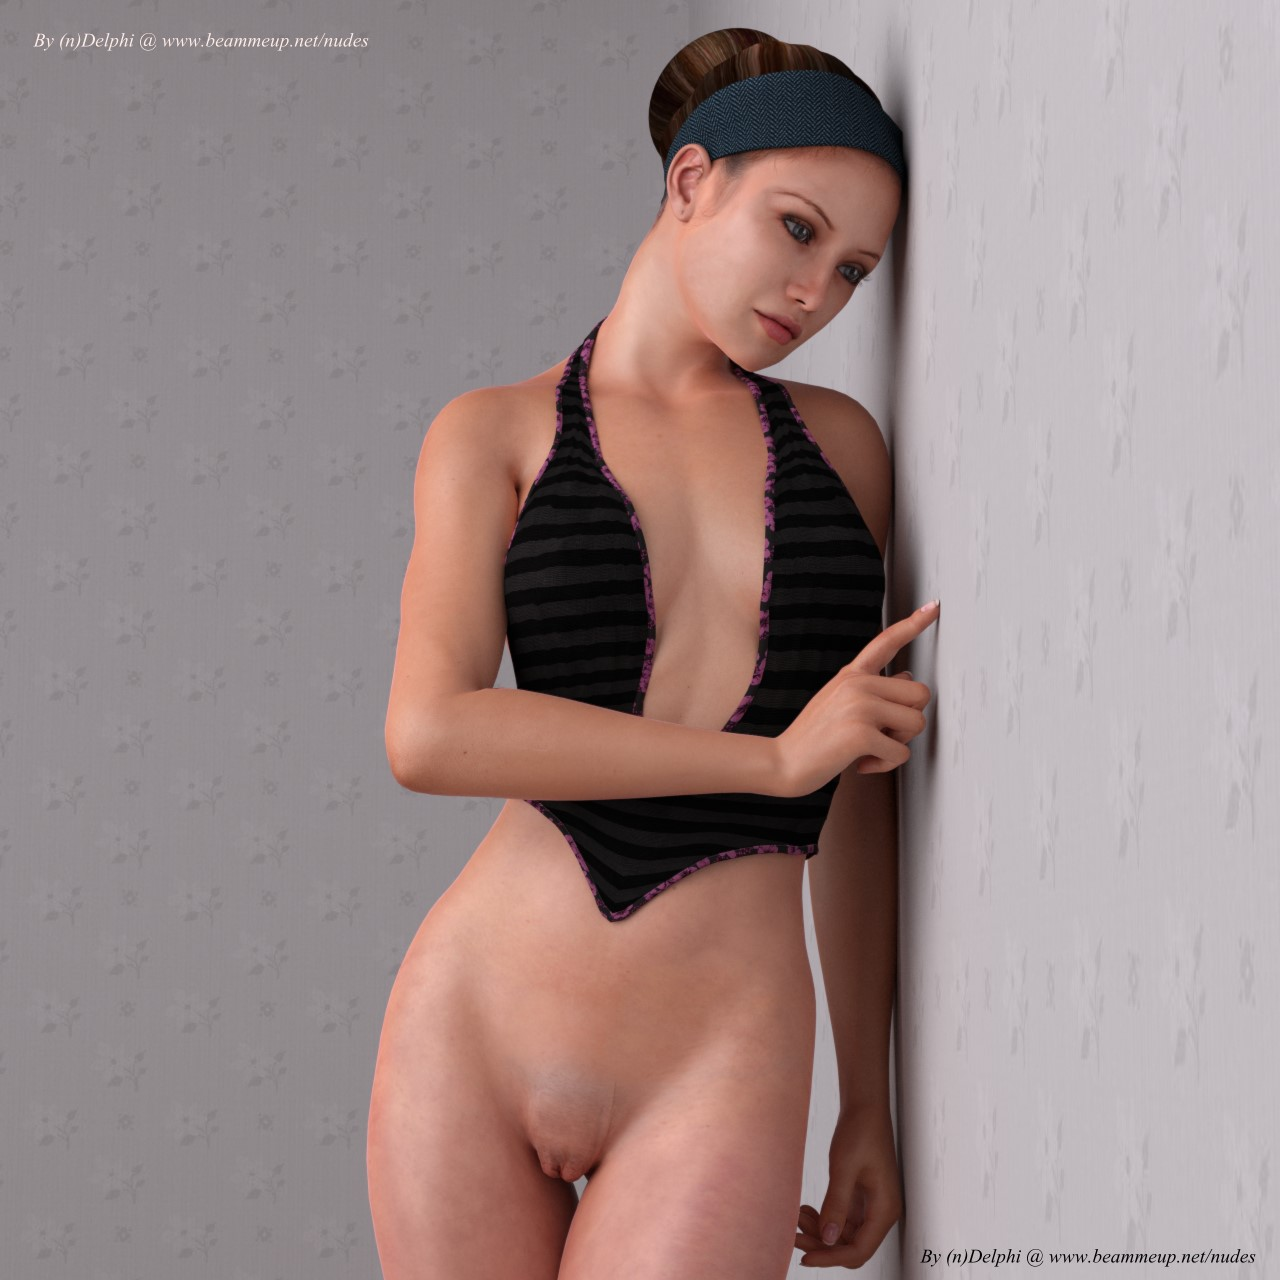 Daz3d nude pic hentai galleries